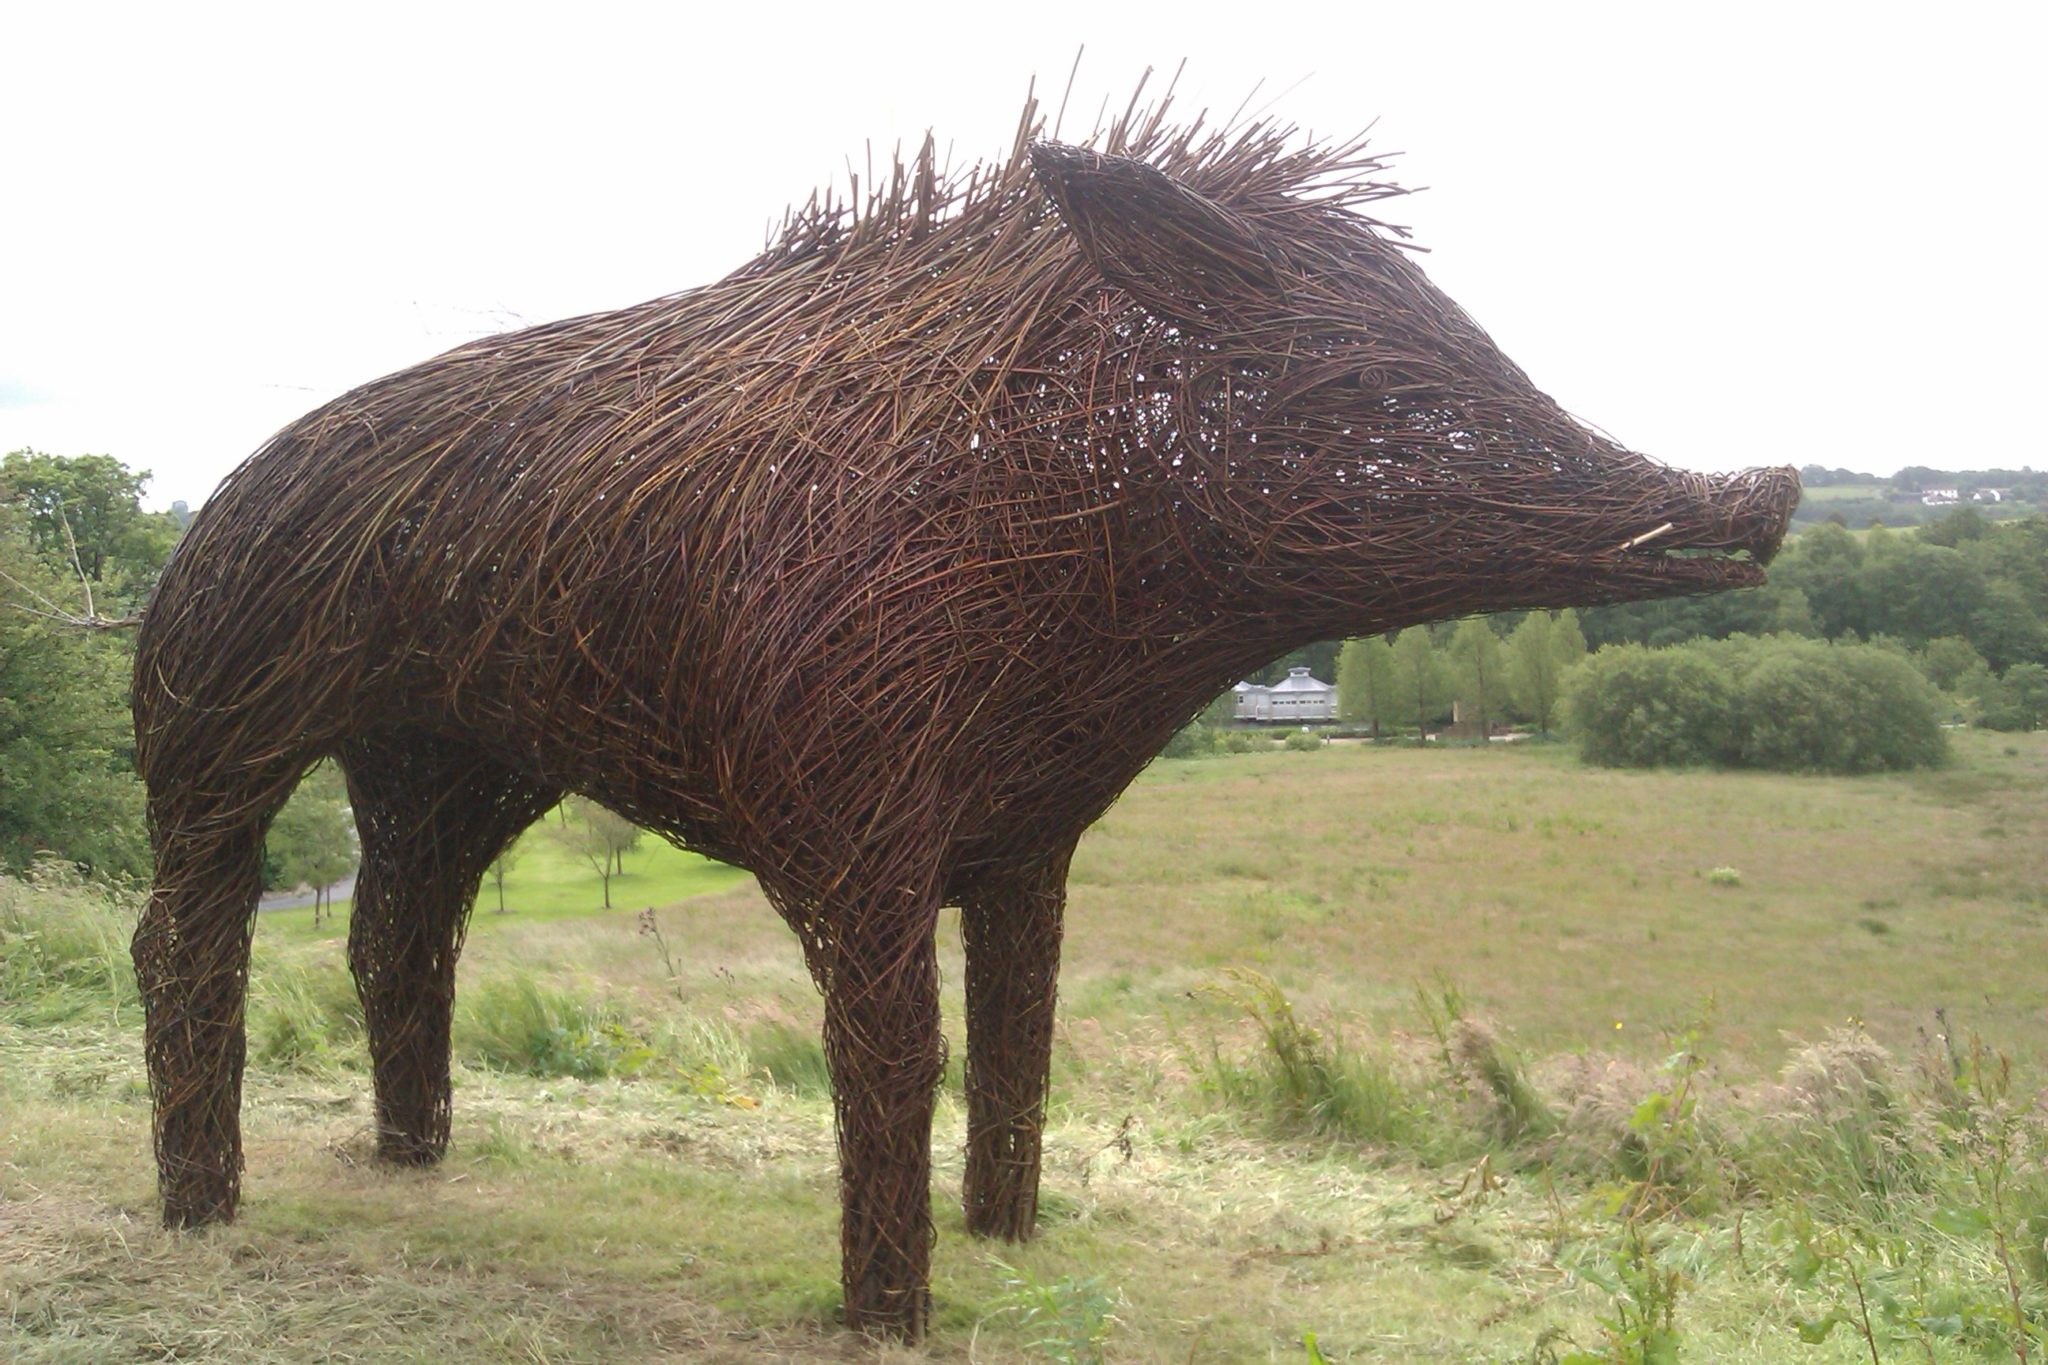 Wild boar at National Botanic Garden of Wales